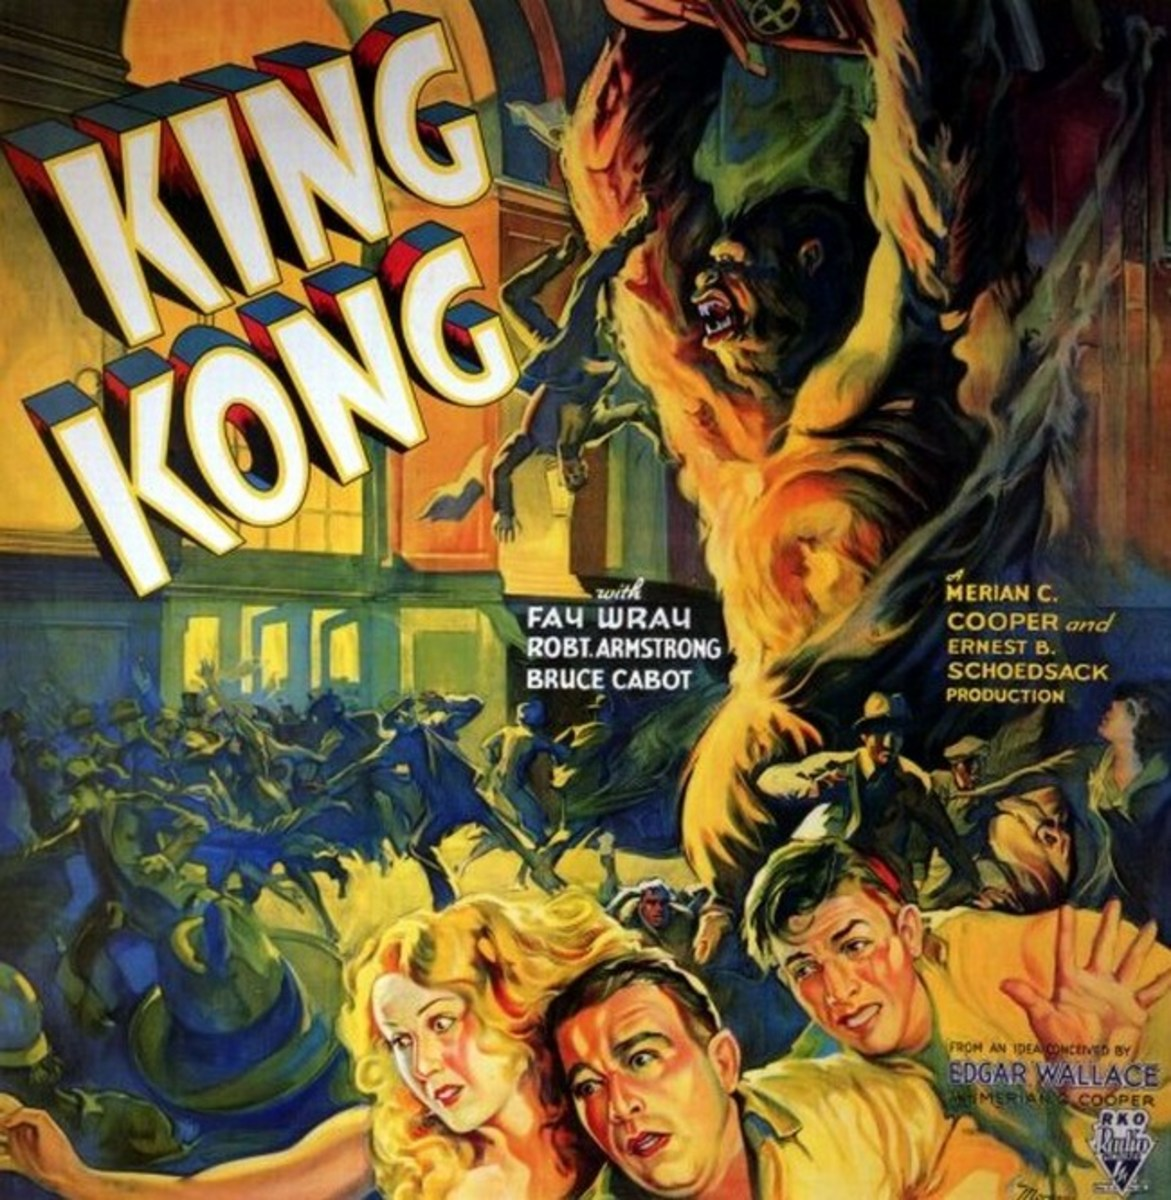 Fantasy 1930-1949 - 100 Years of Movie Posters - 32